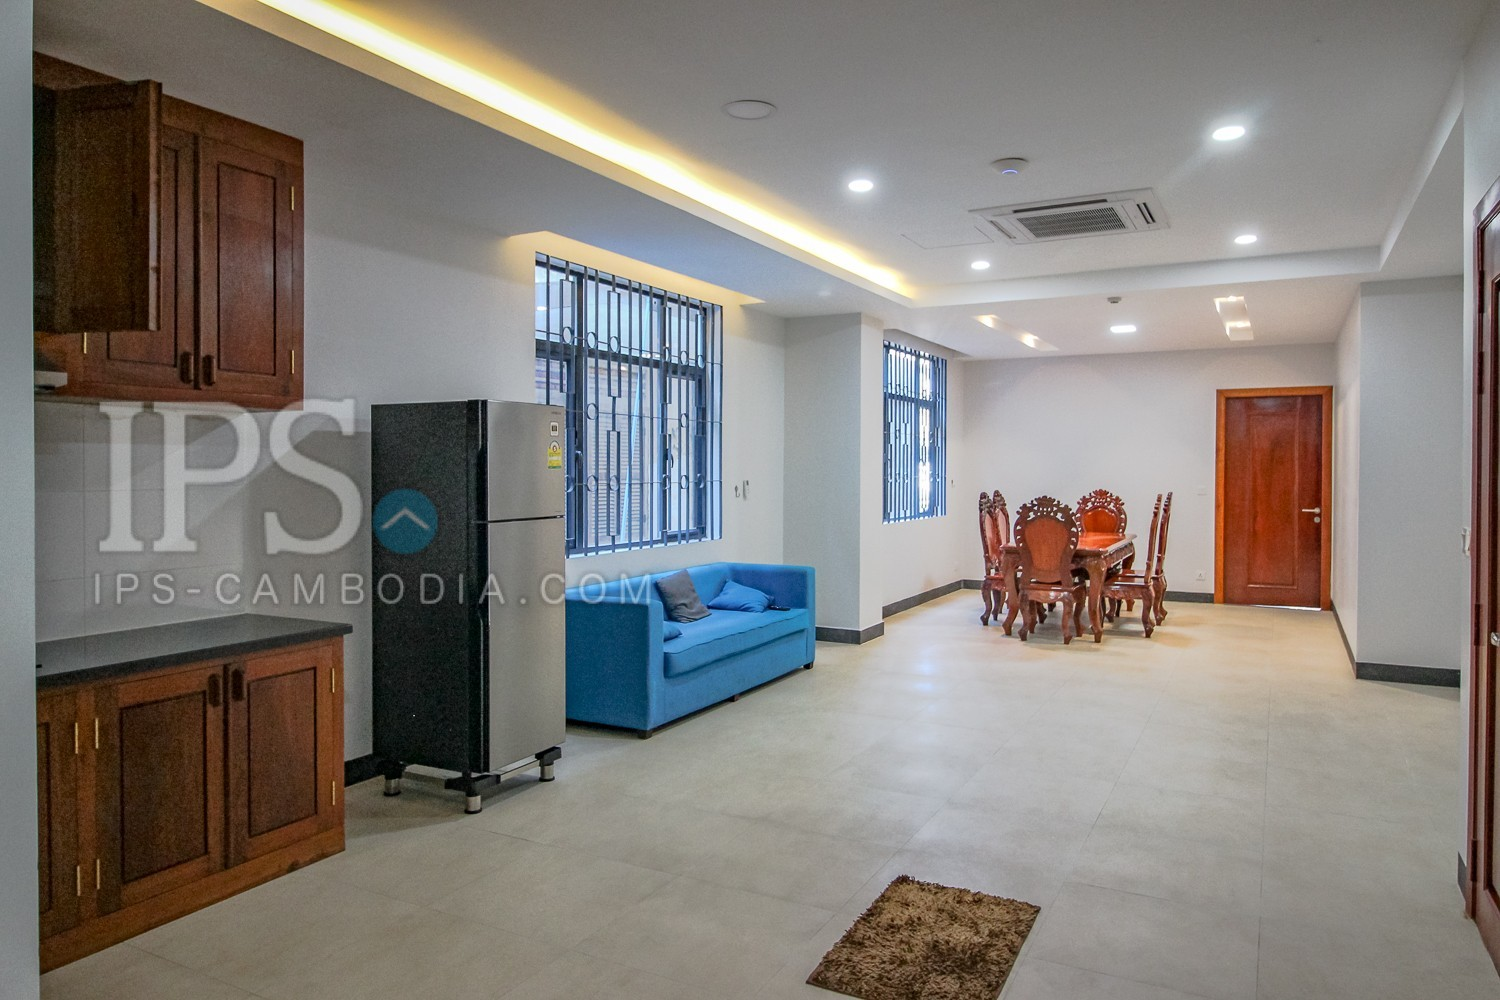 3 Bedrooms Apartment For Rent - Tonle Bassac, Phnom Penh